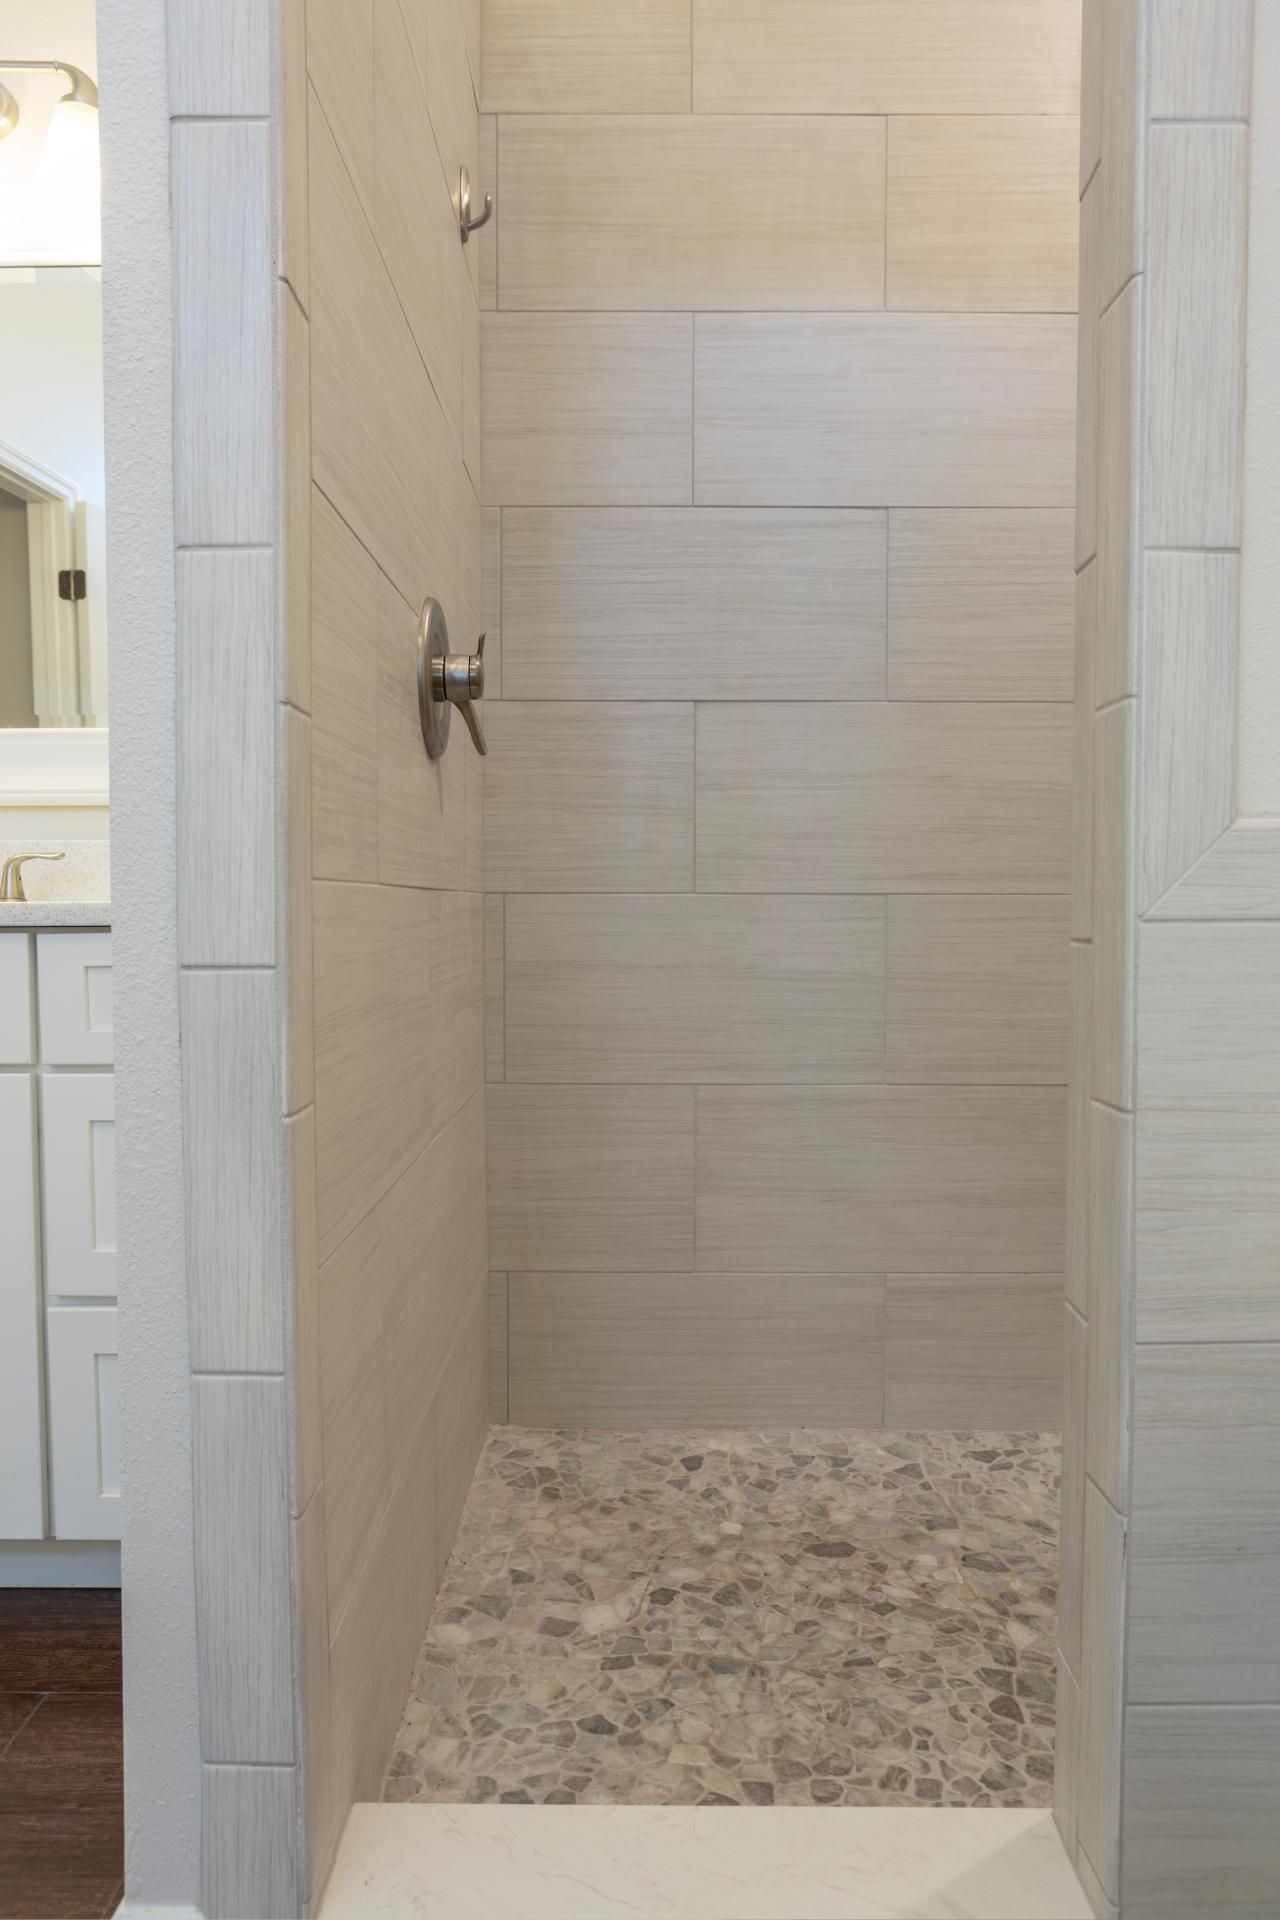 Lindross remodelingcoastal custom homes1gndhgtvcom pebble shower floor sleek yet soft gray tiles carve out a gorgeous walk in shower in this transitional bathroom pebble tile floors in gray tones coordinate dailygadgetfo Images